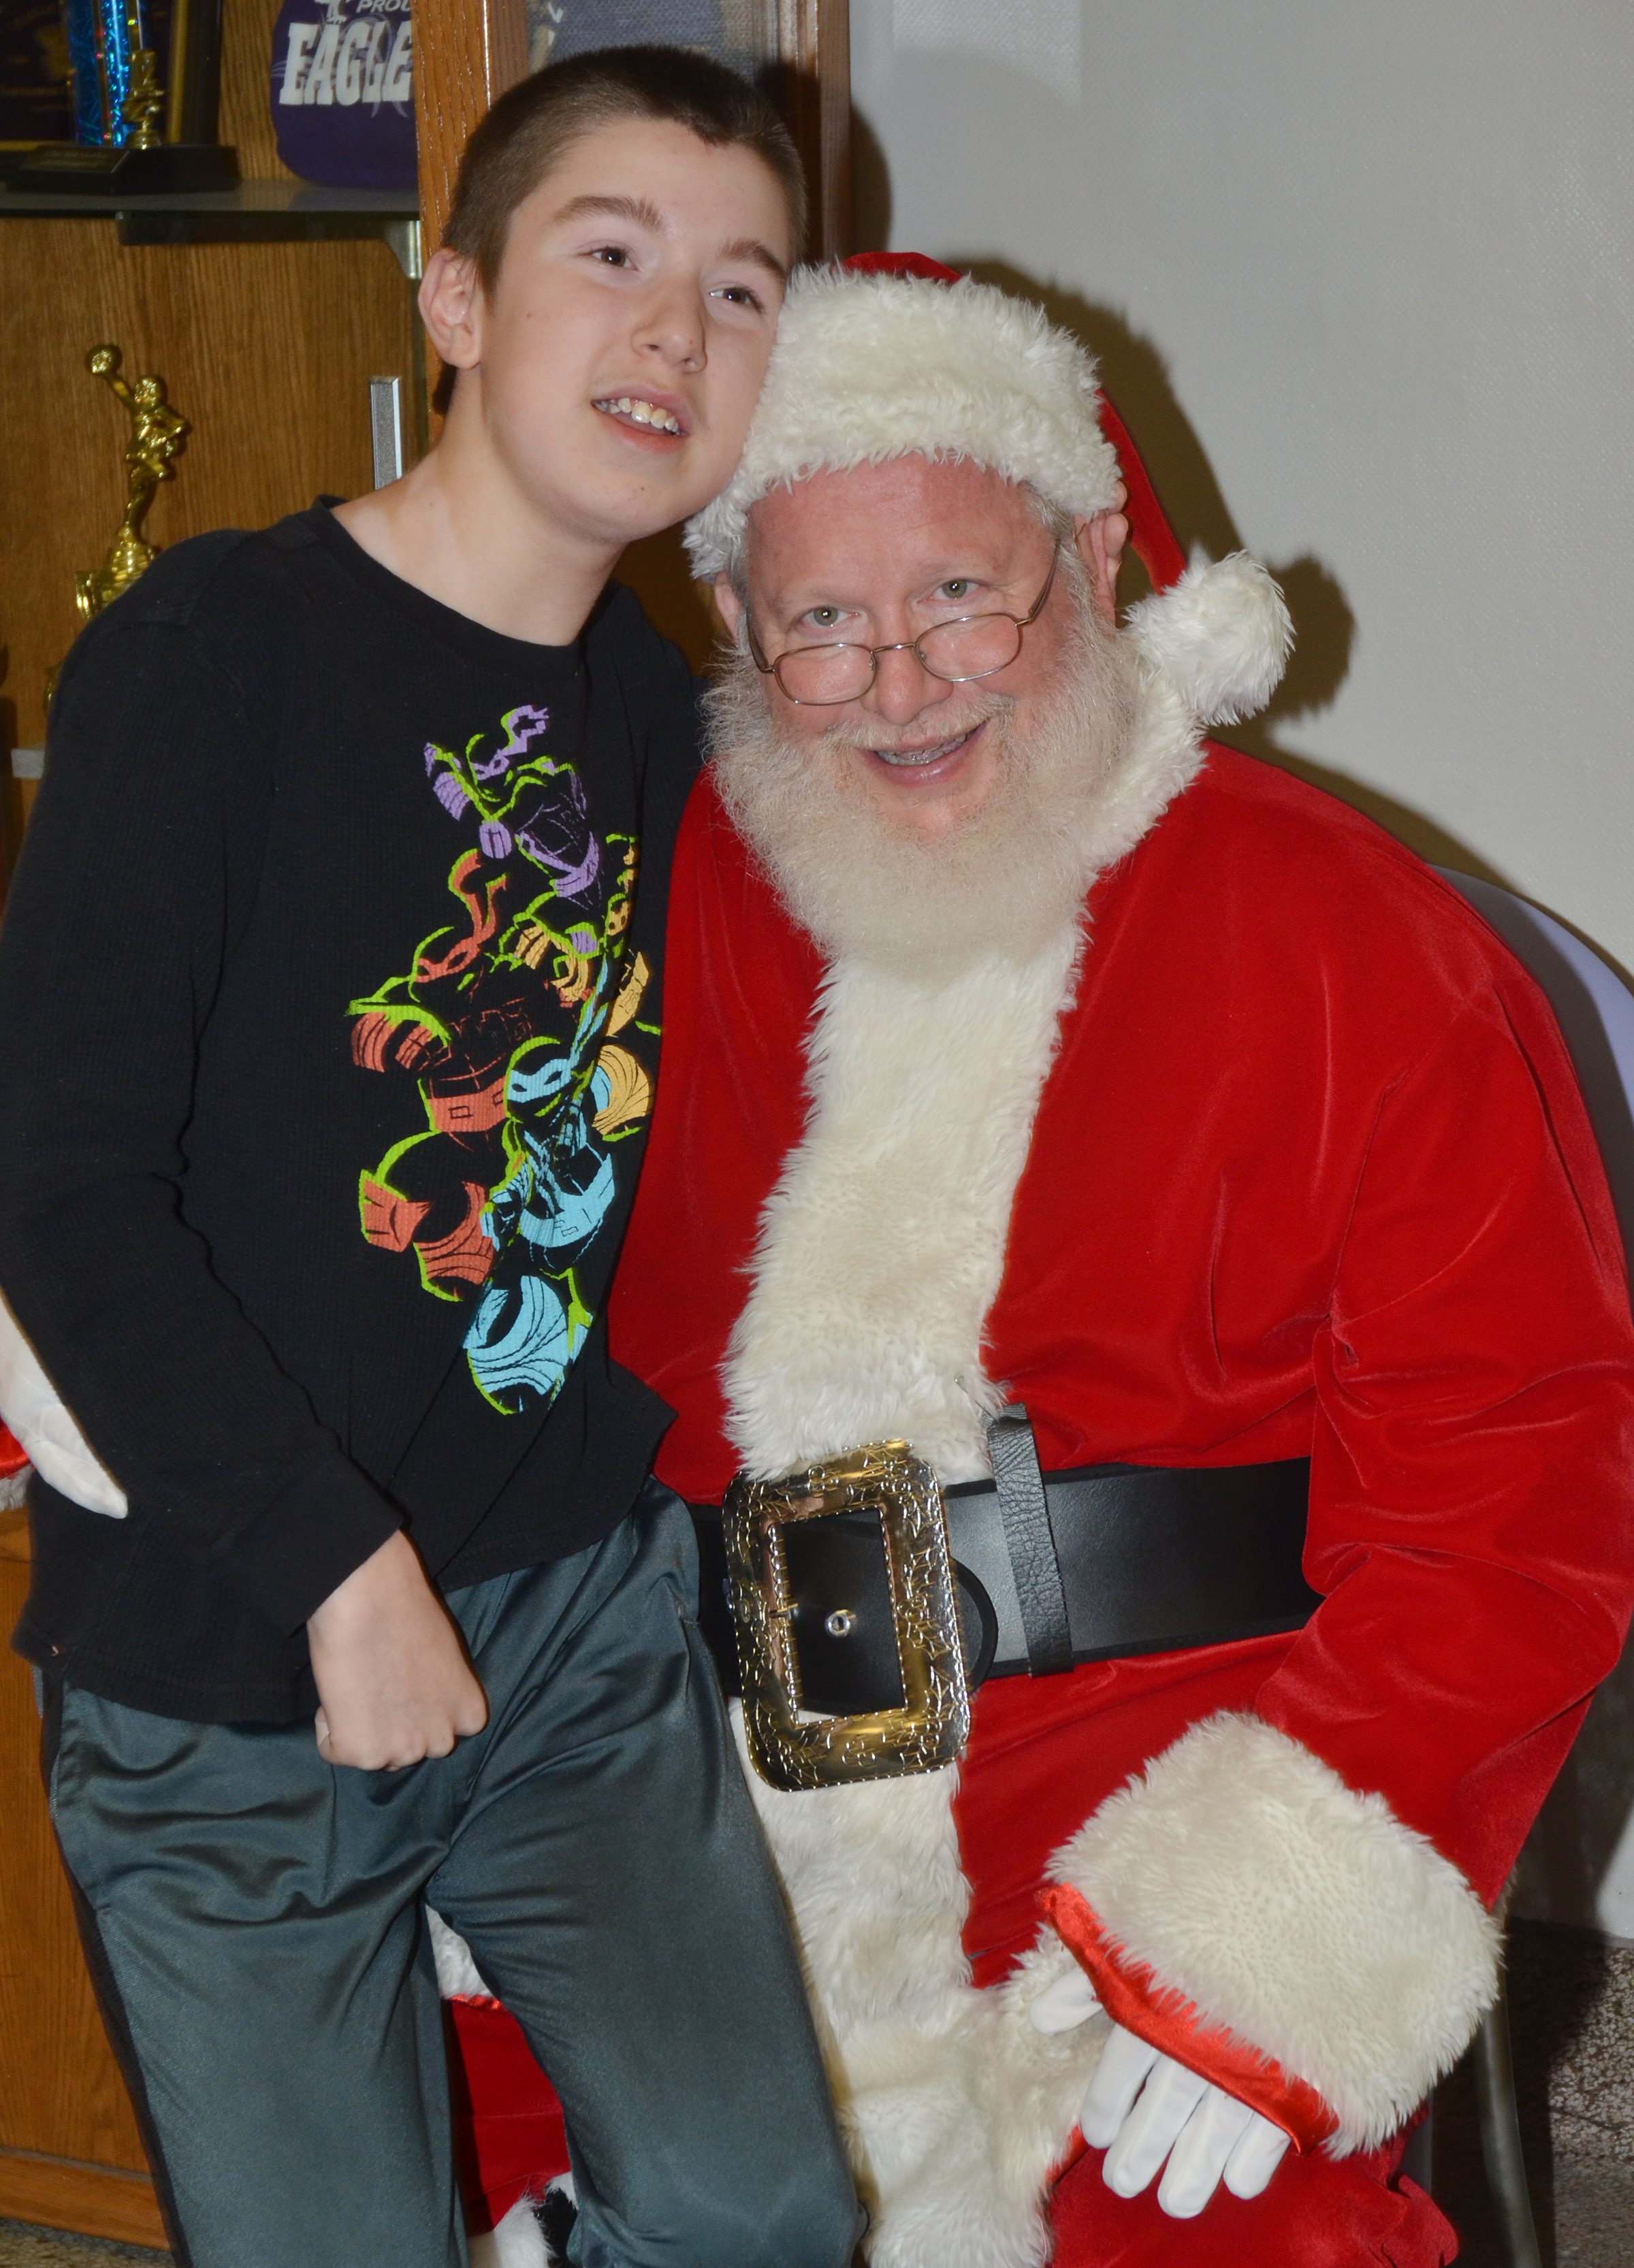 Campbellsville Middle School eighth-grader Jordan Wilson smiles for a photo with Santa.